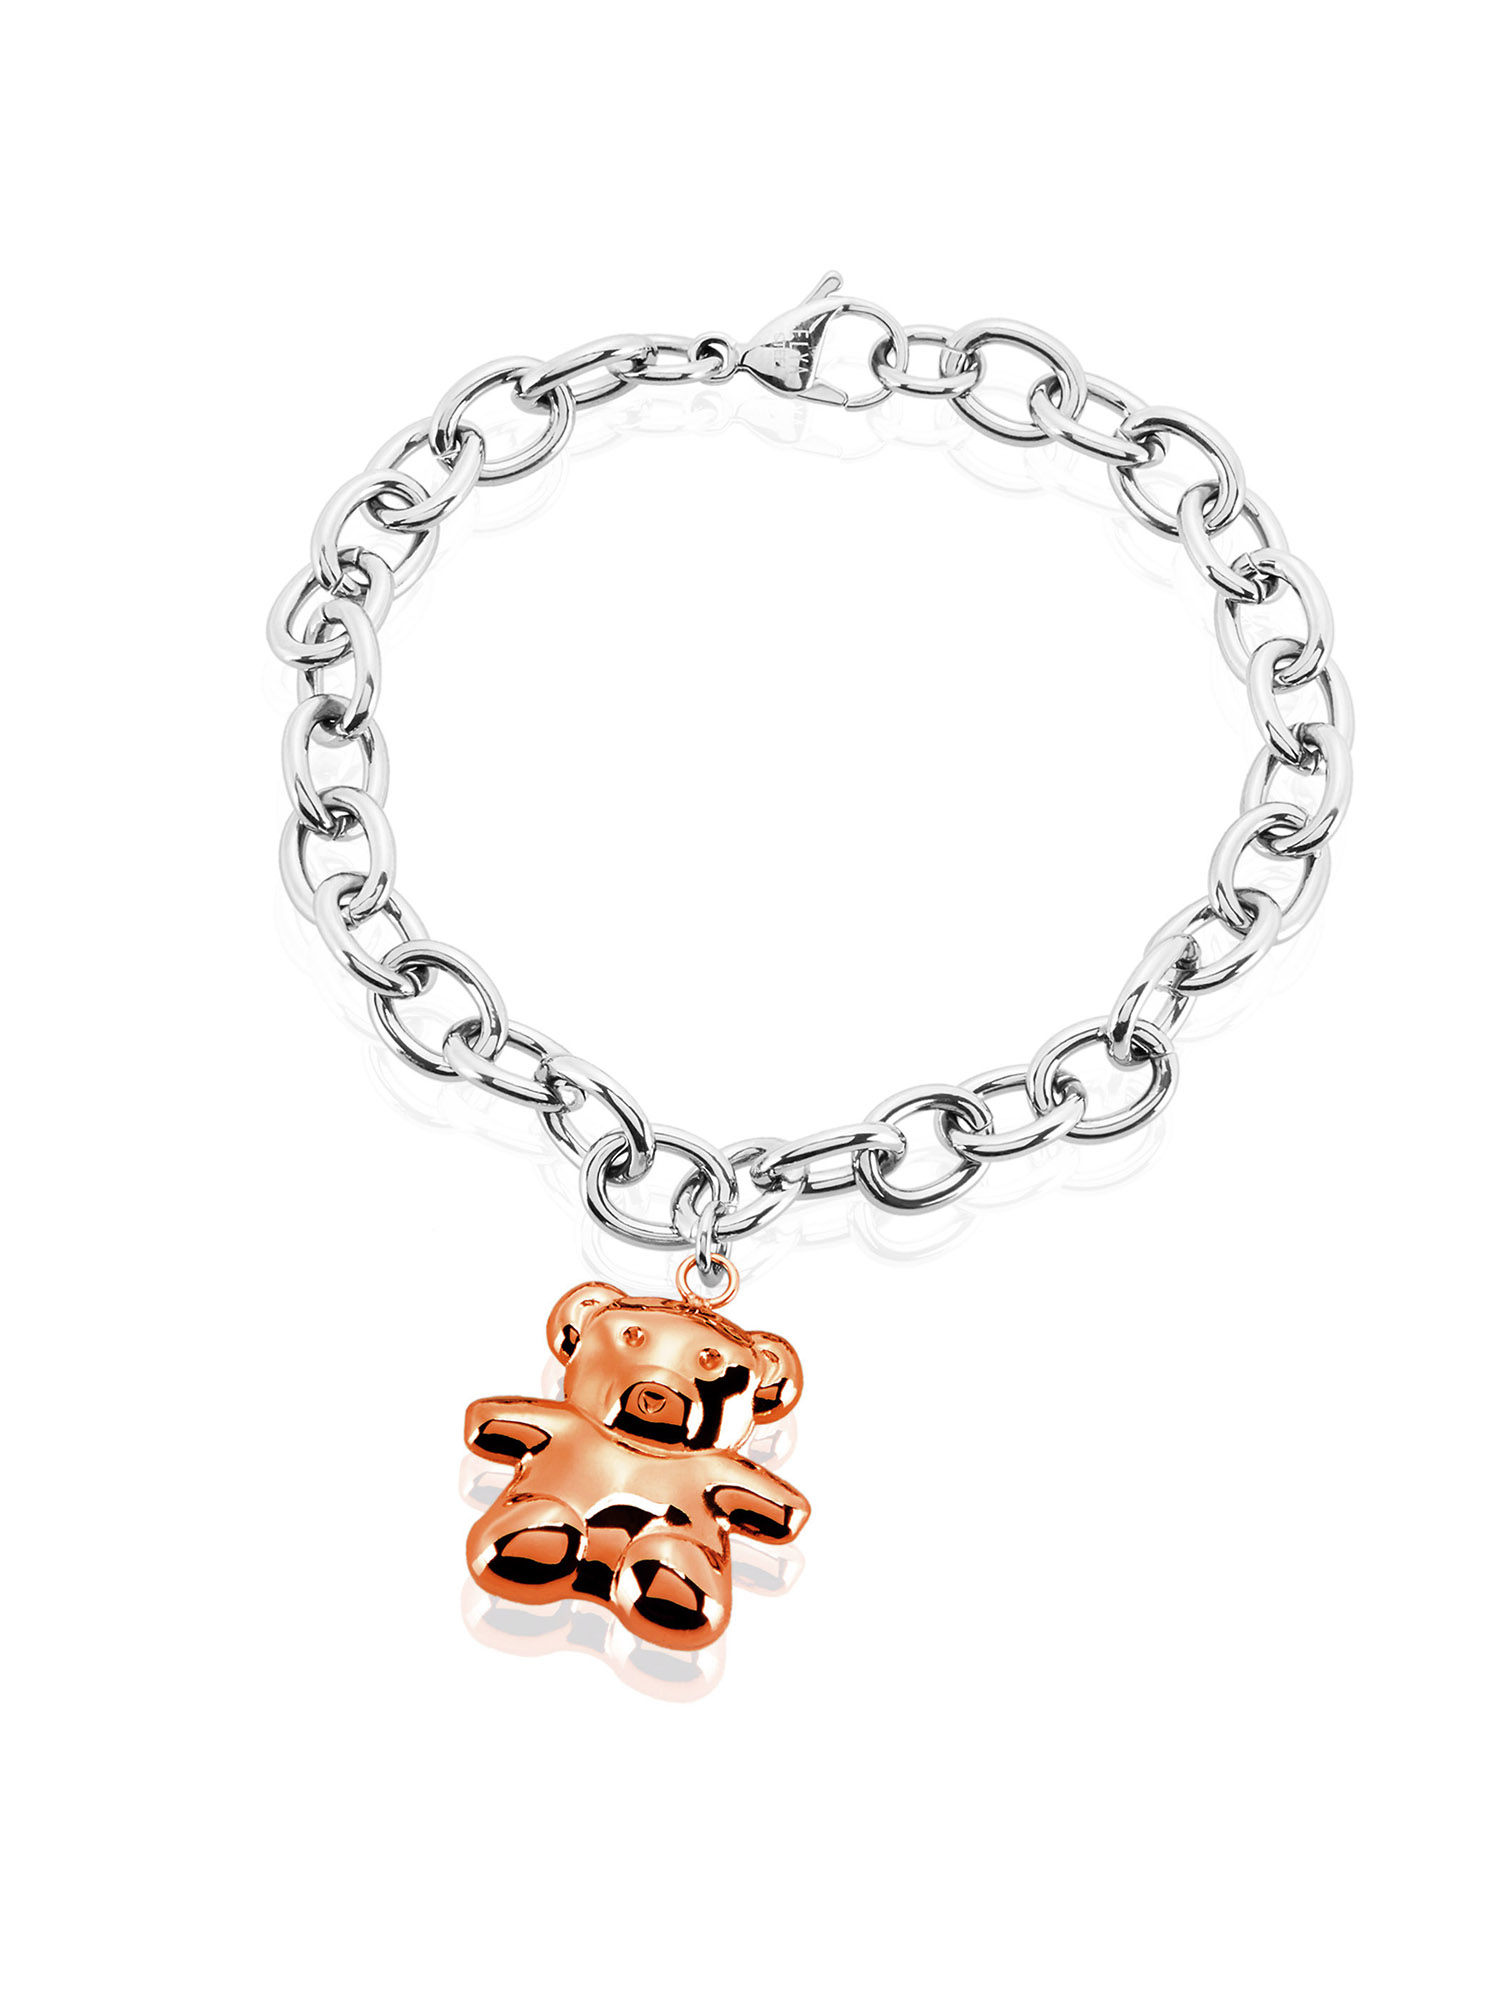 ELYA Rose Gold Bear Charm Stainless Steel High Polish Cable Chain Bracelet (8mm) - 8""